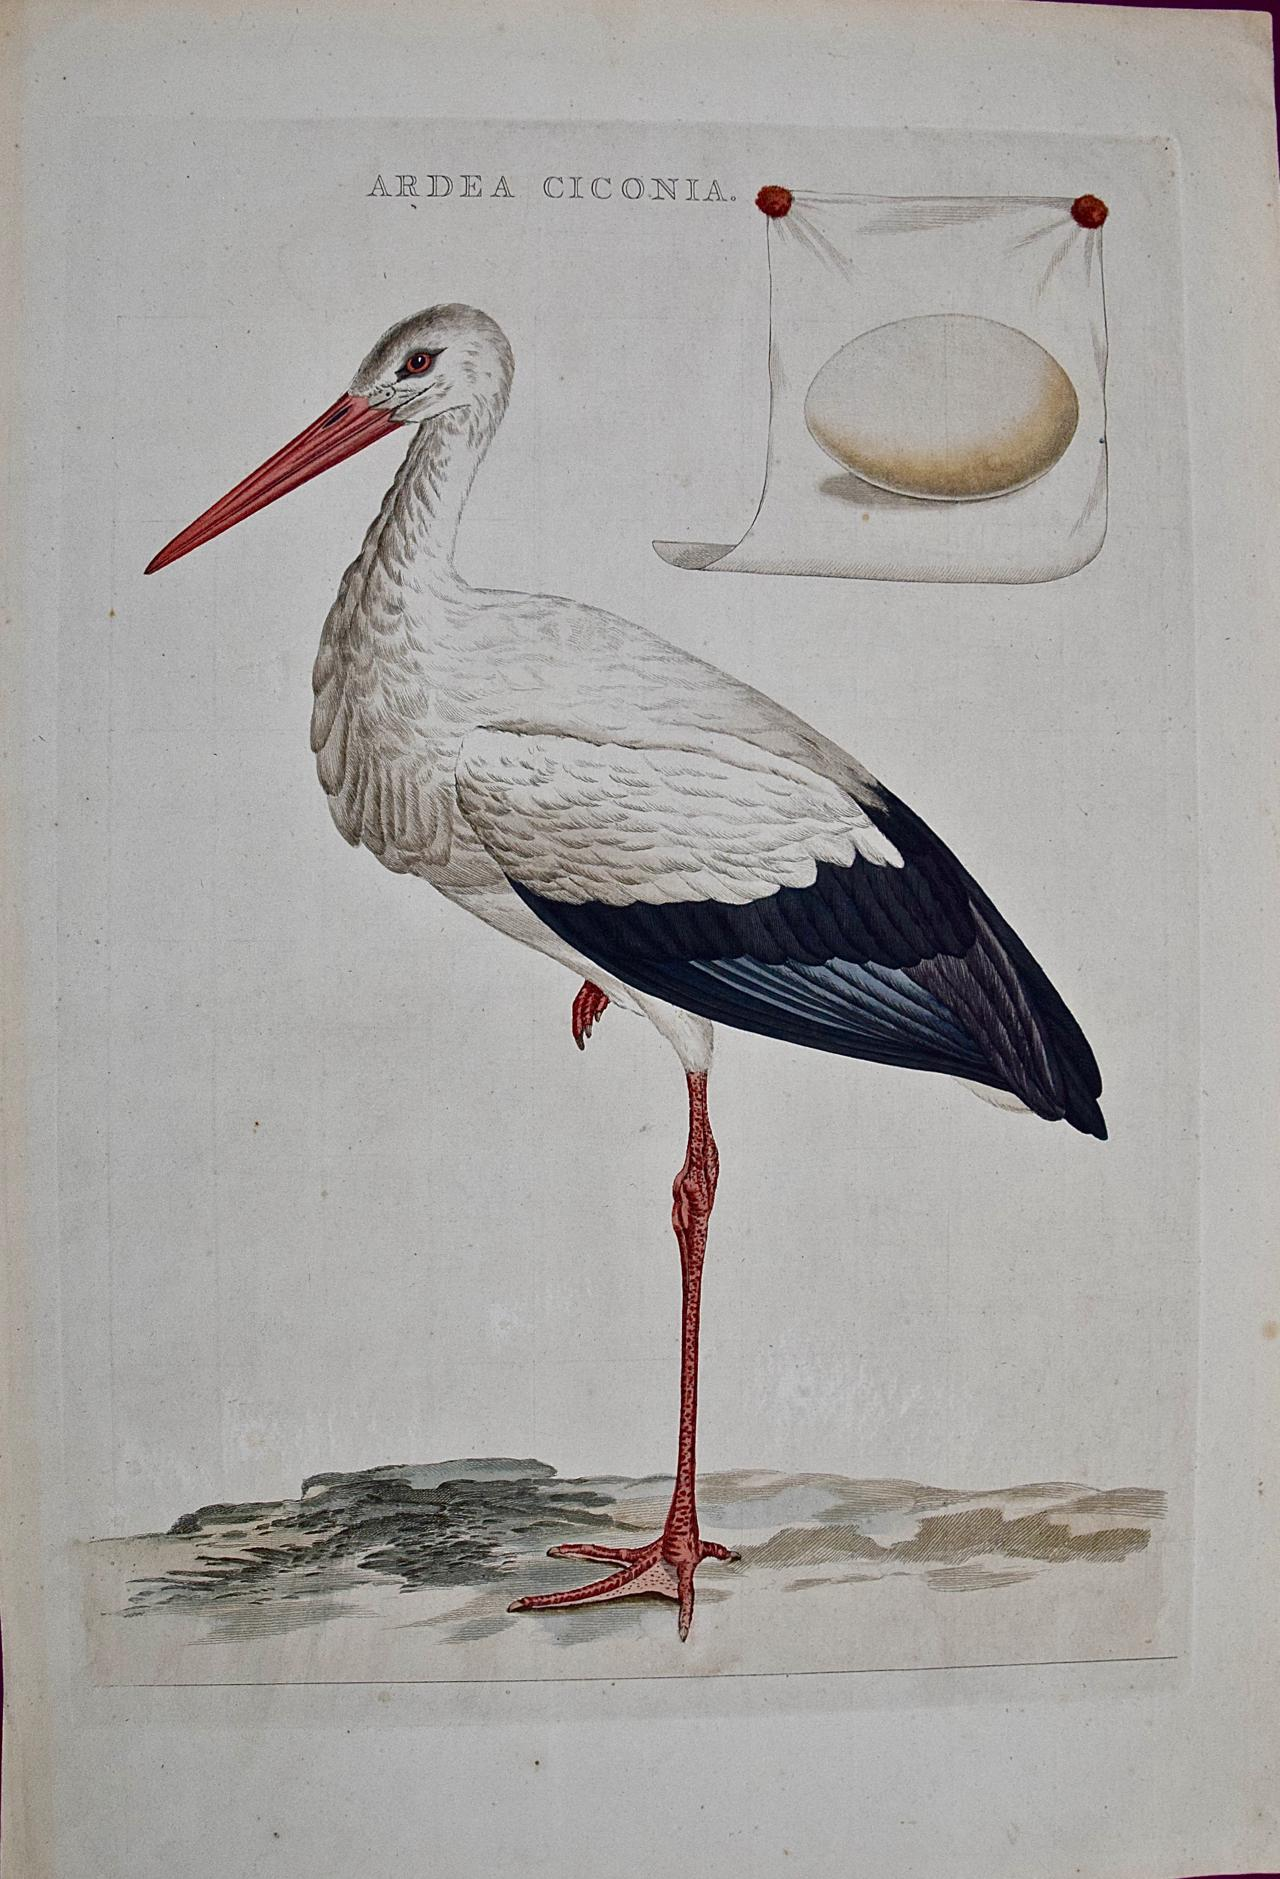 """An 18th Century Hand-colored Nozeman Engraving """"Ardea Ciconia"""" or White Stork"""